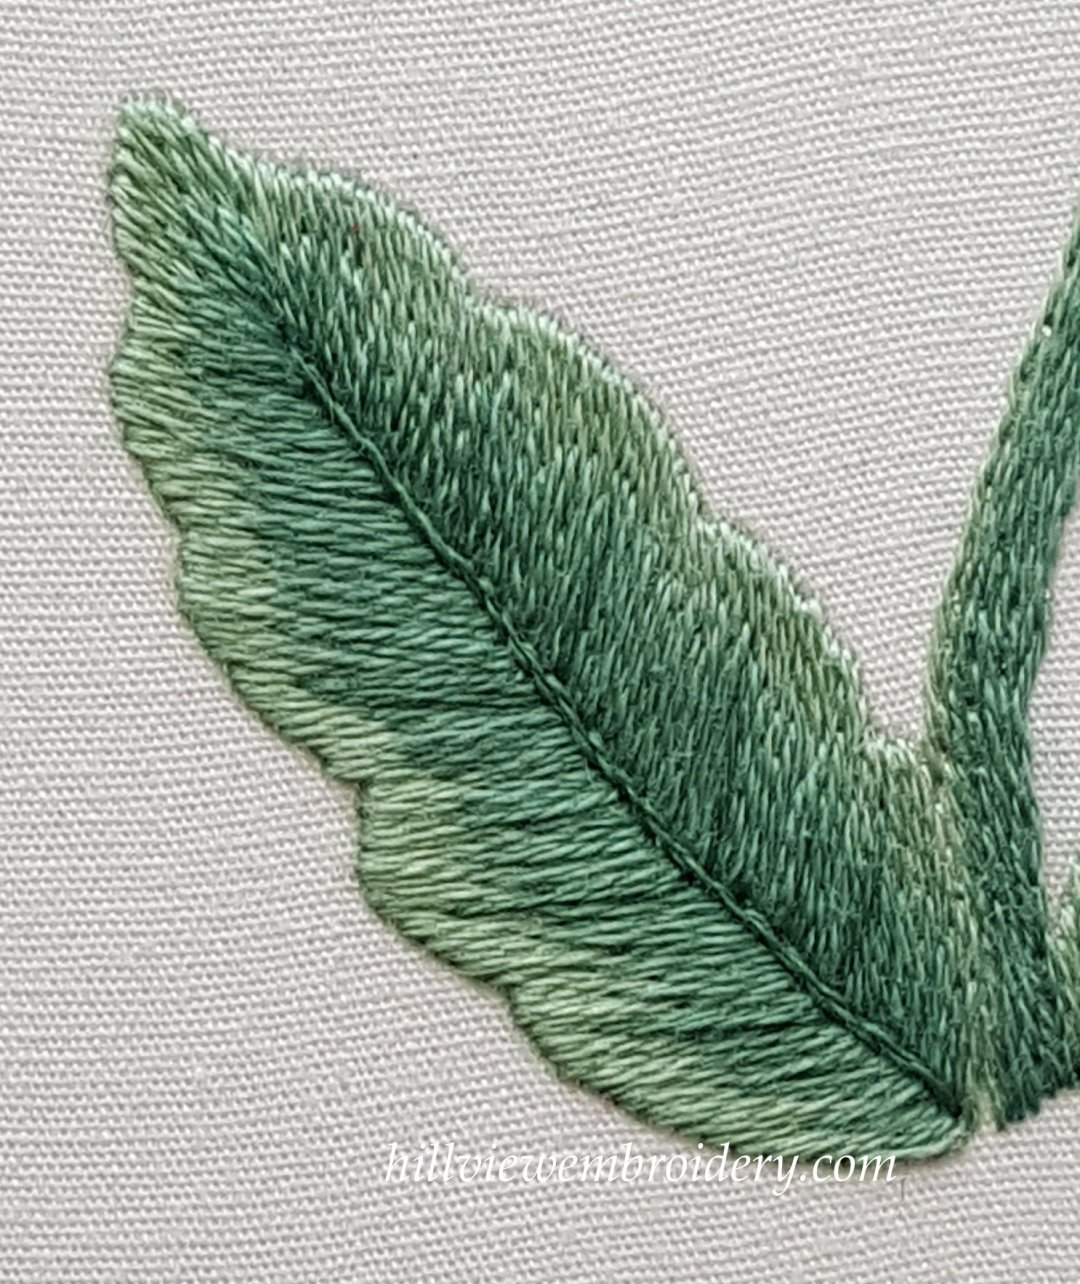 A leaf completed in silk shading with veins highlighted